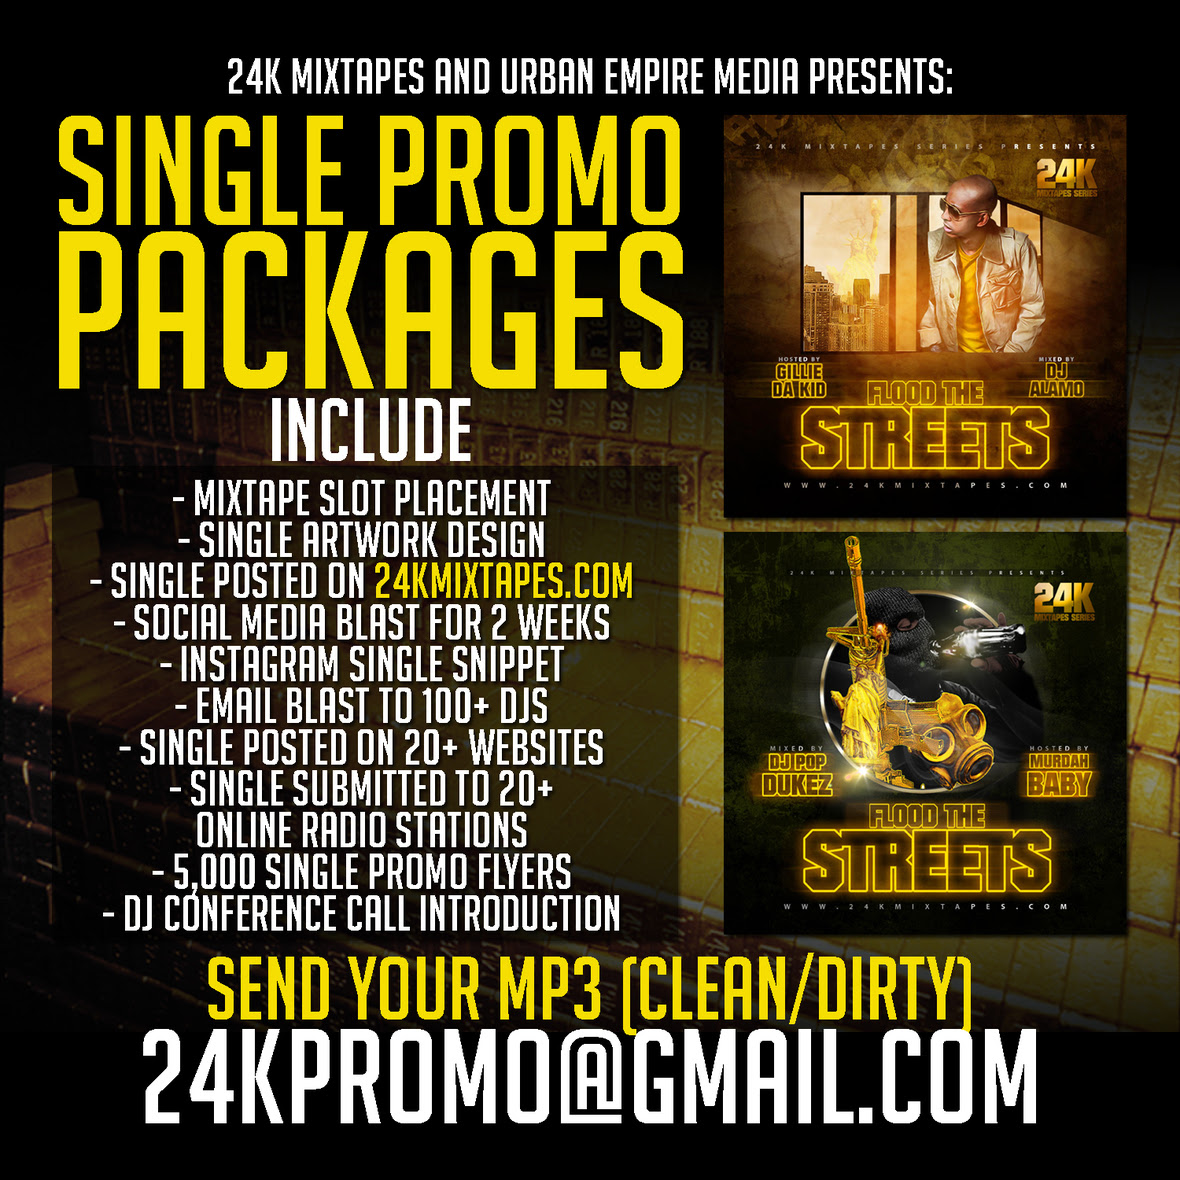 Single Promo Packages